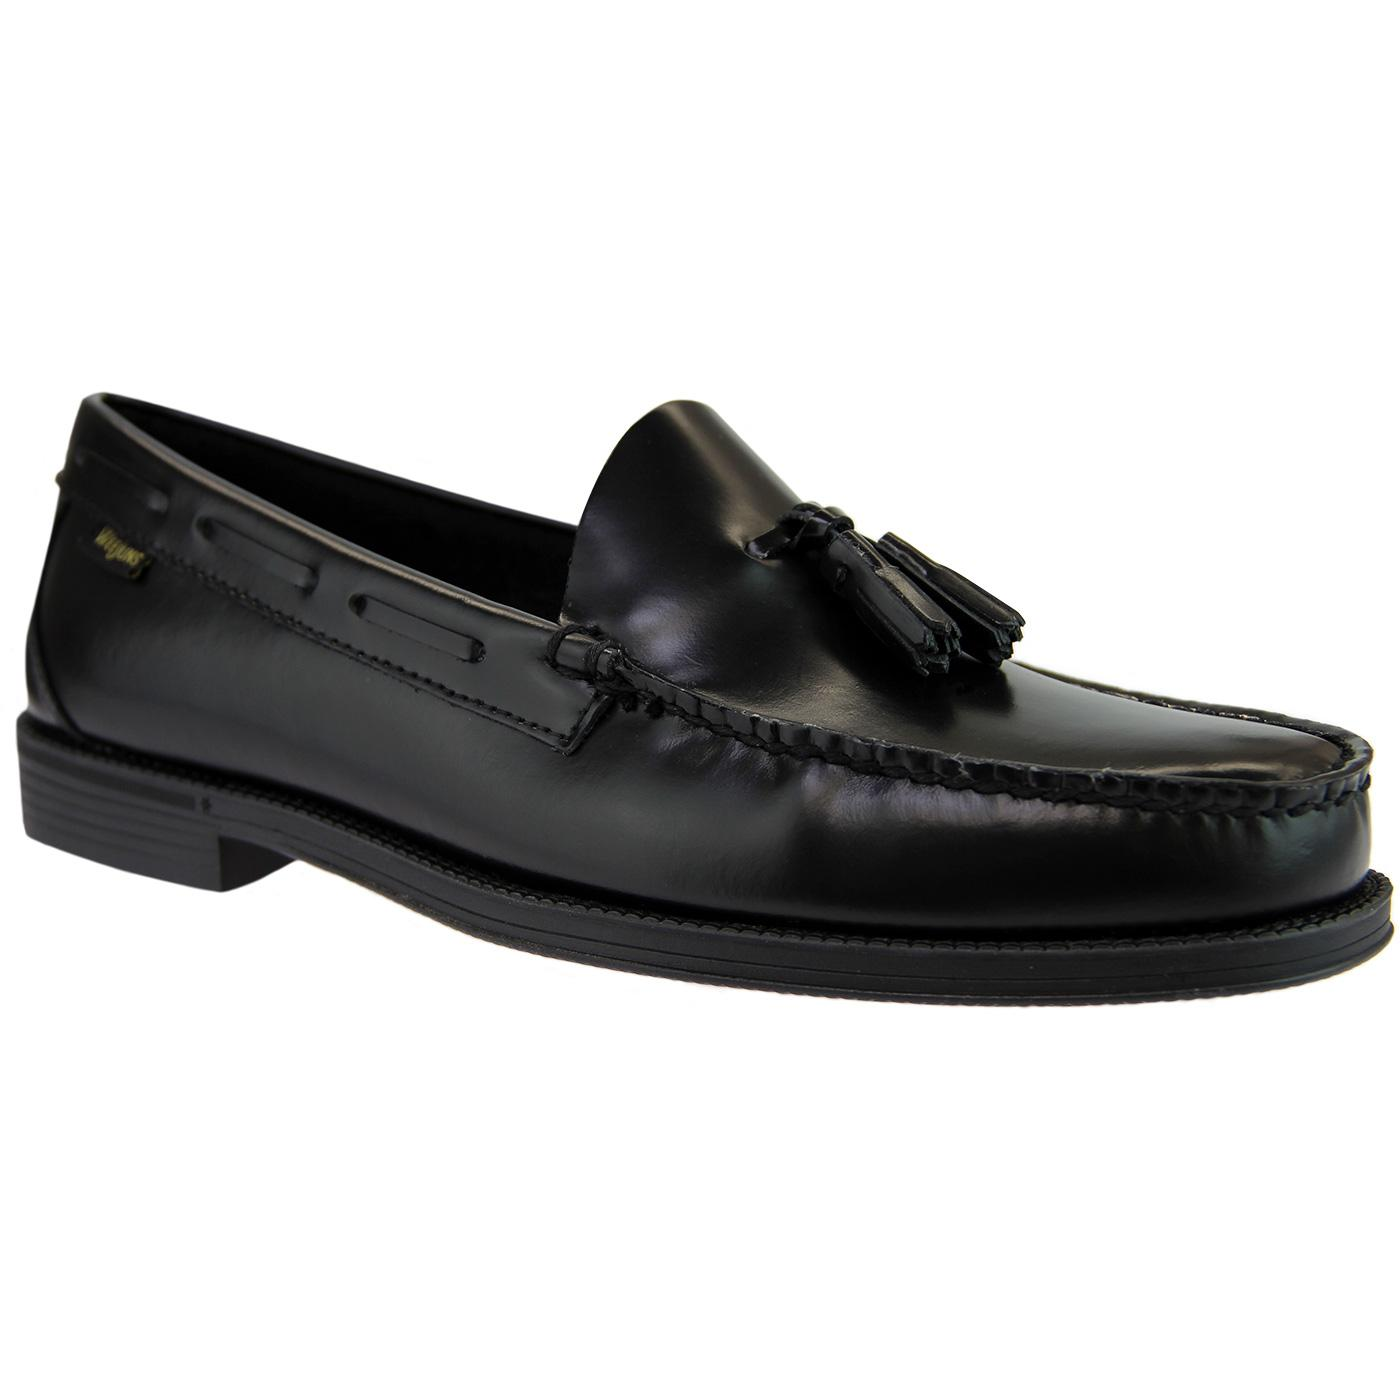 Larkin Easy BASS WEEJUNS Moccasin Tassel Loafers B